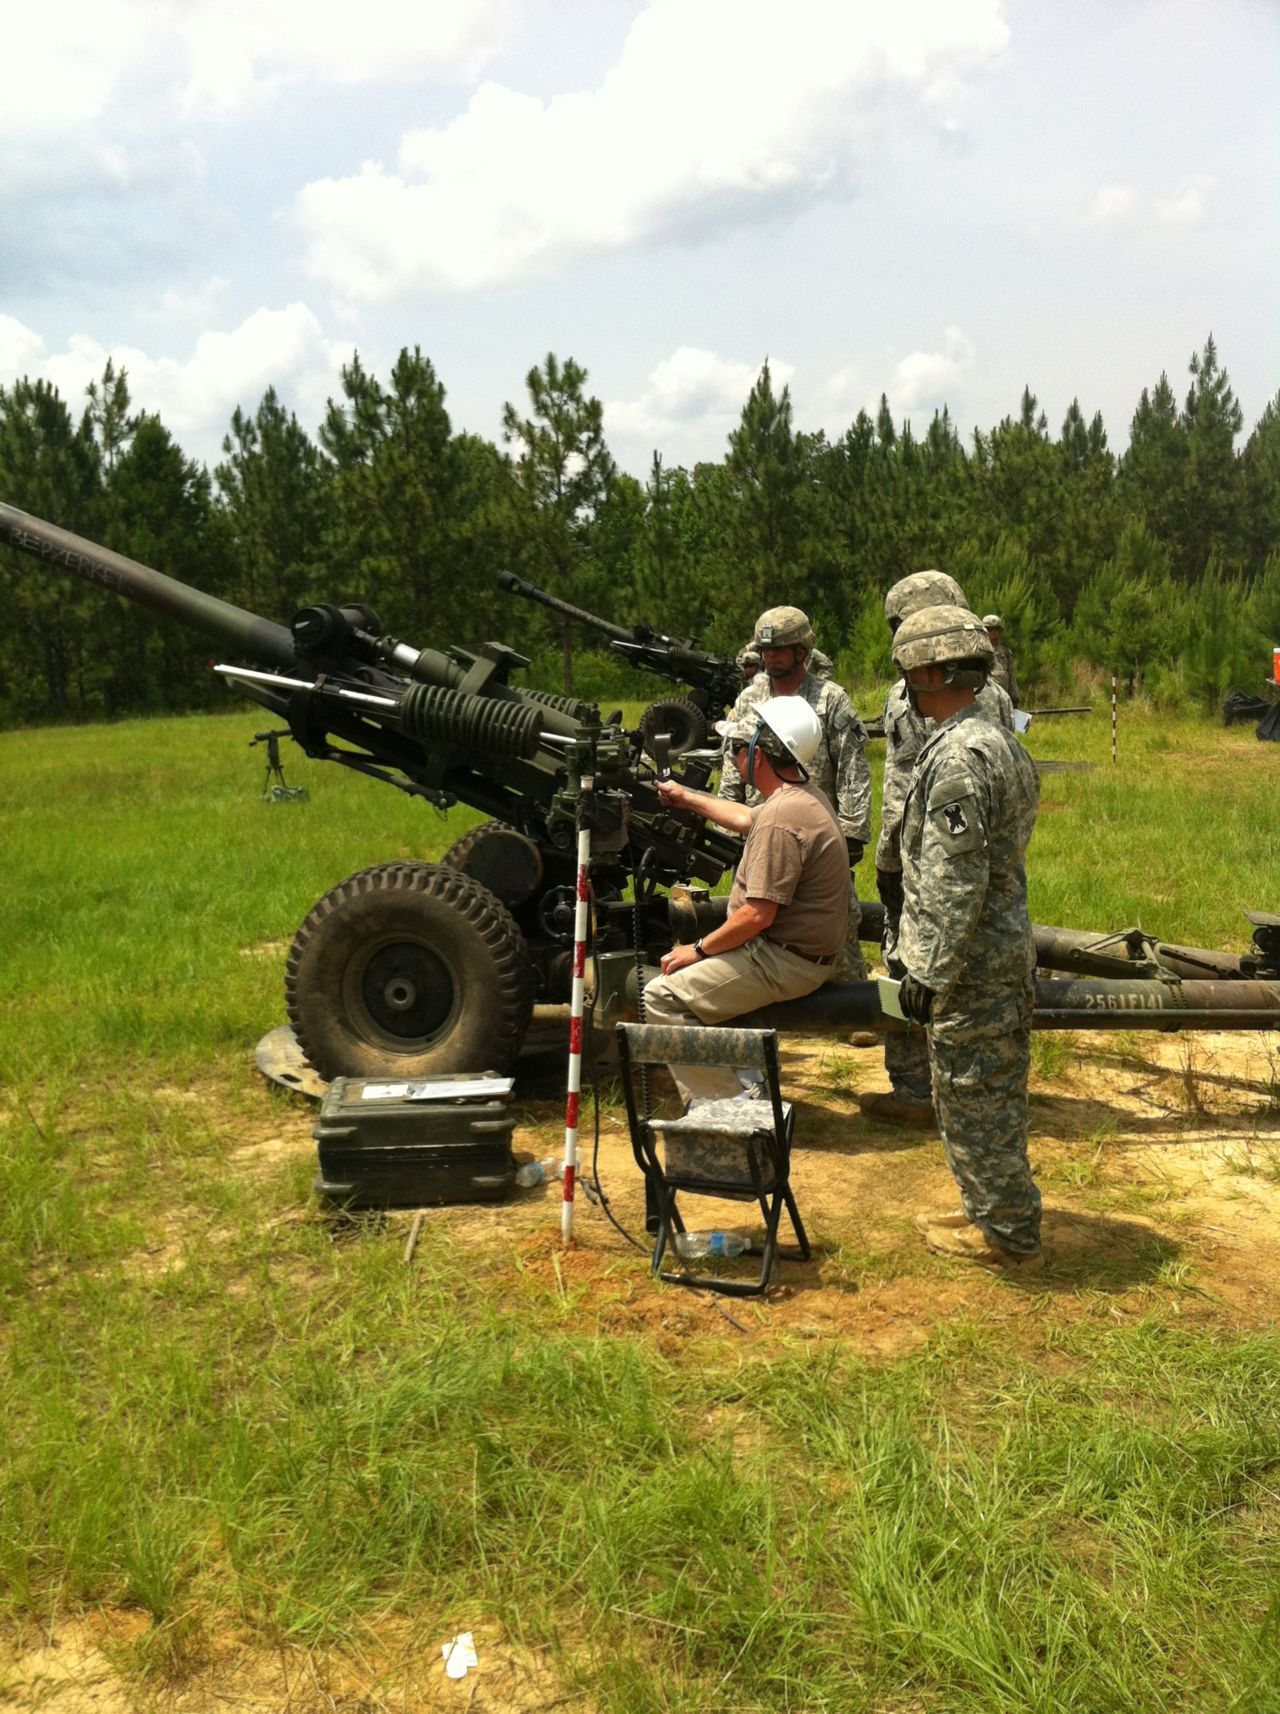 Attorney Wes Gralapp Fires Cannon